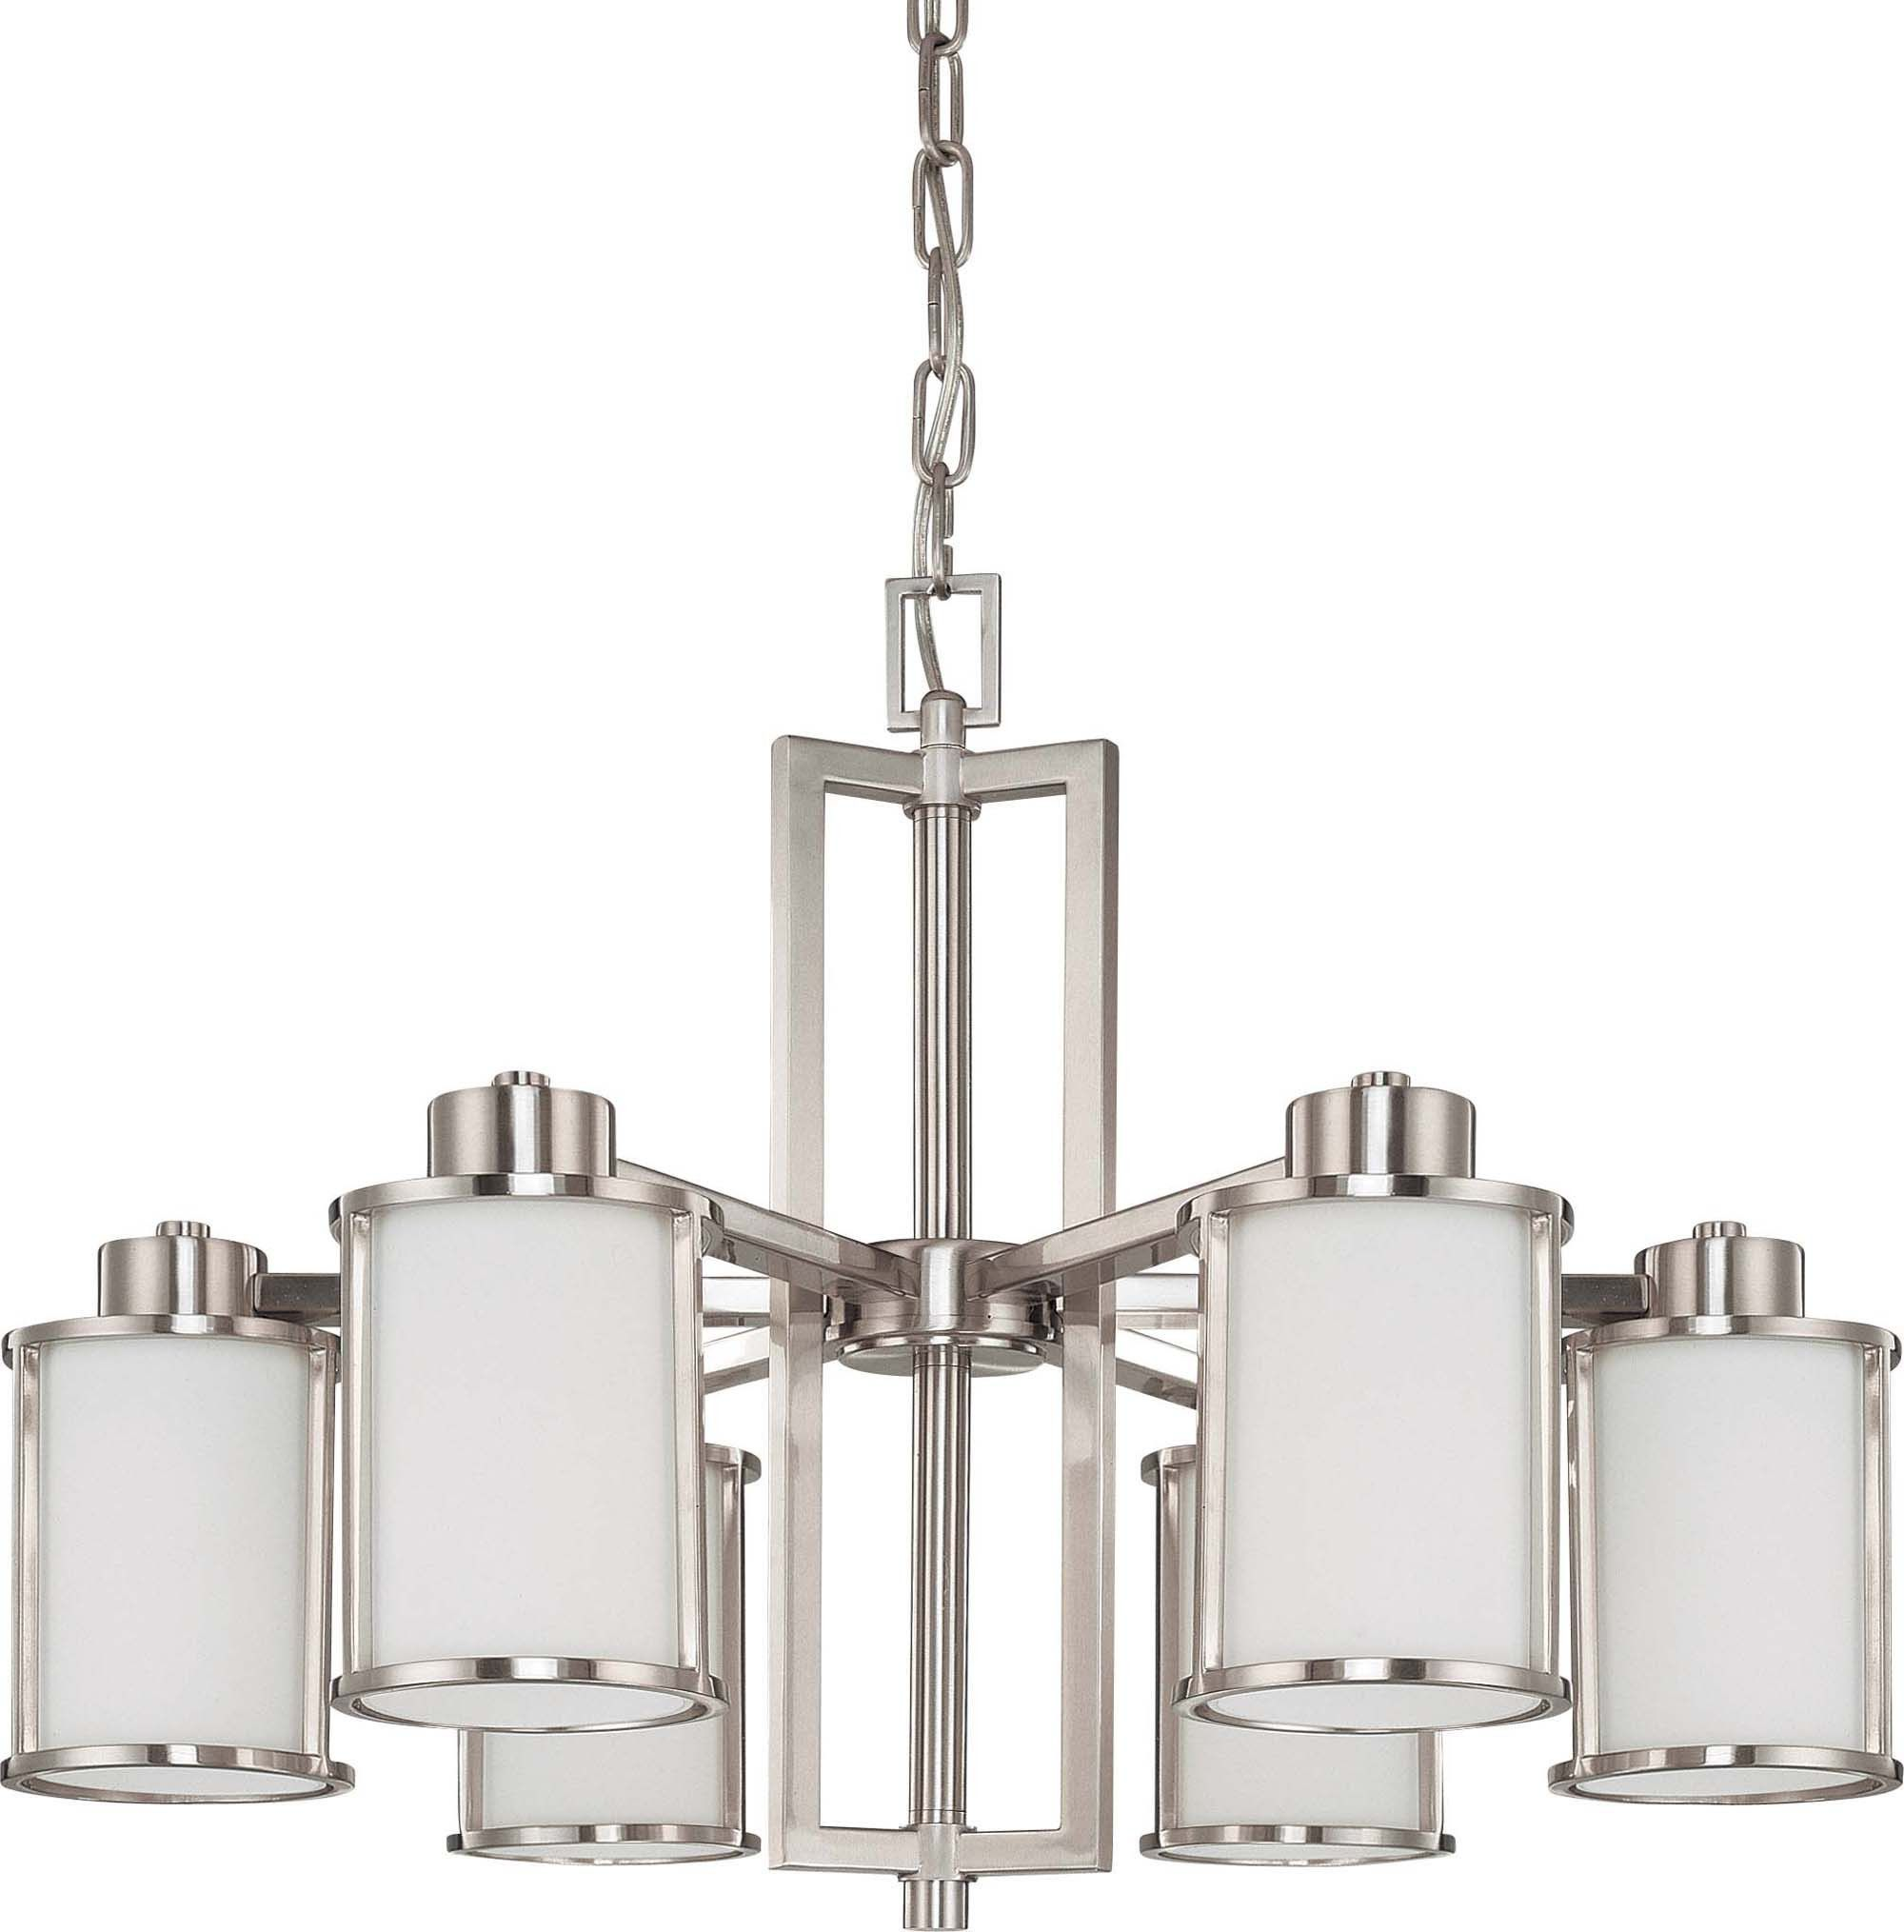 Nuvo Odeon 6 Light convertible up down Chandelier w Satin White